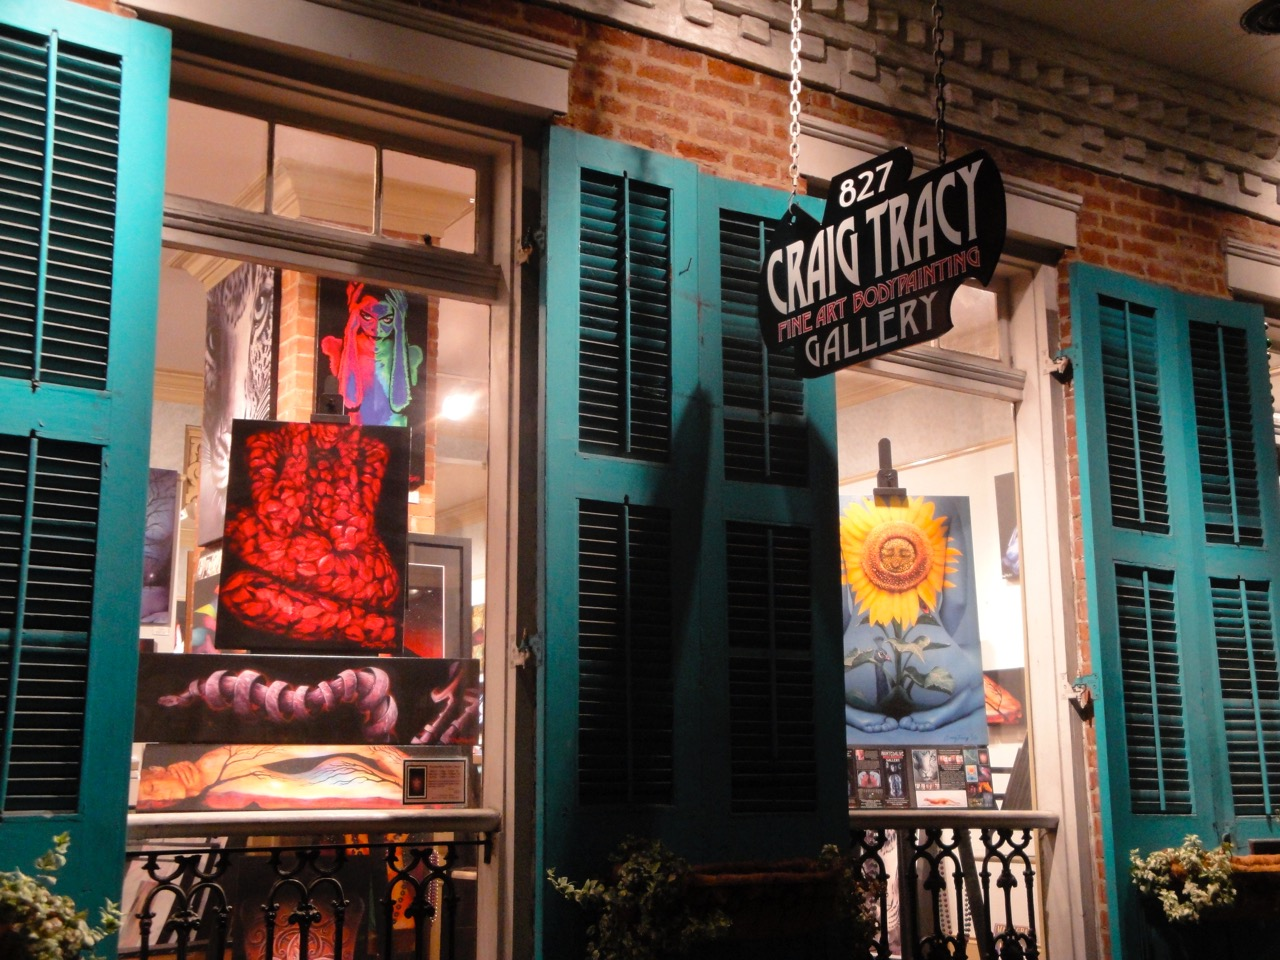 Craig Tracy Gallery, New Orleans